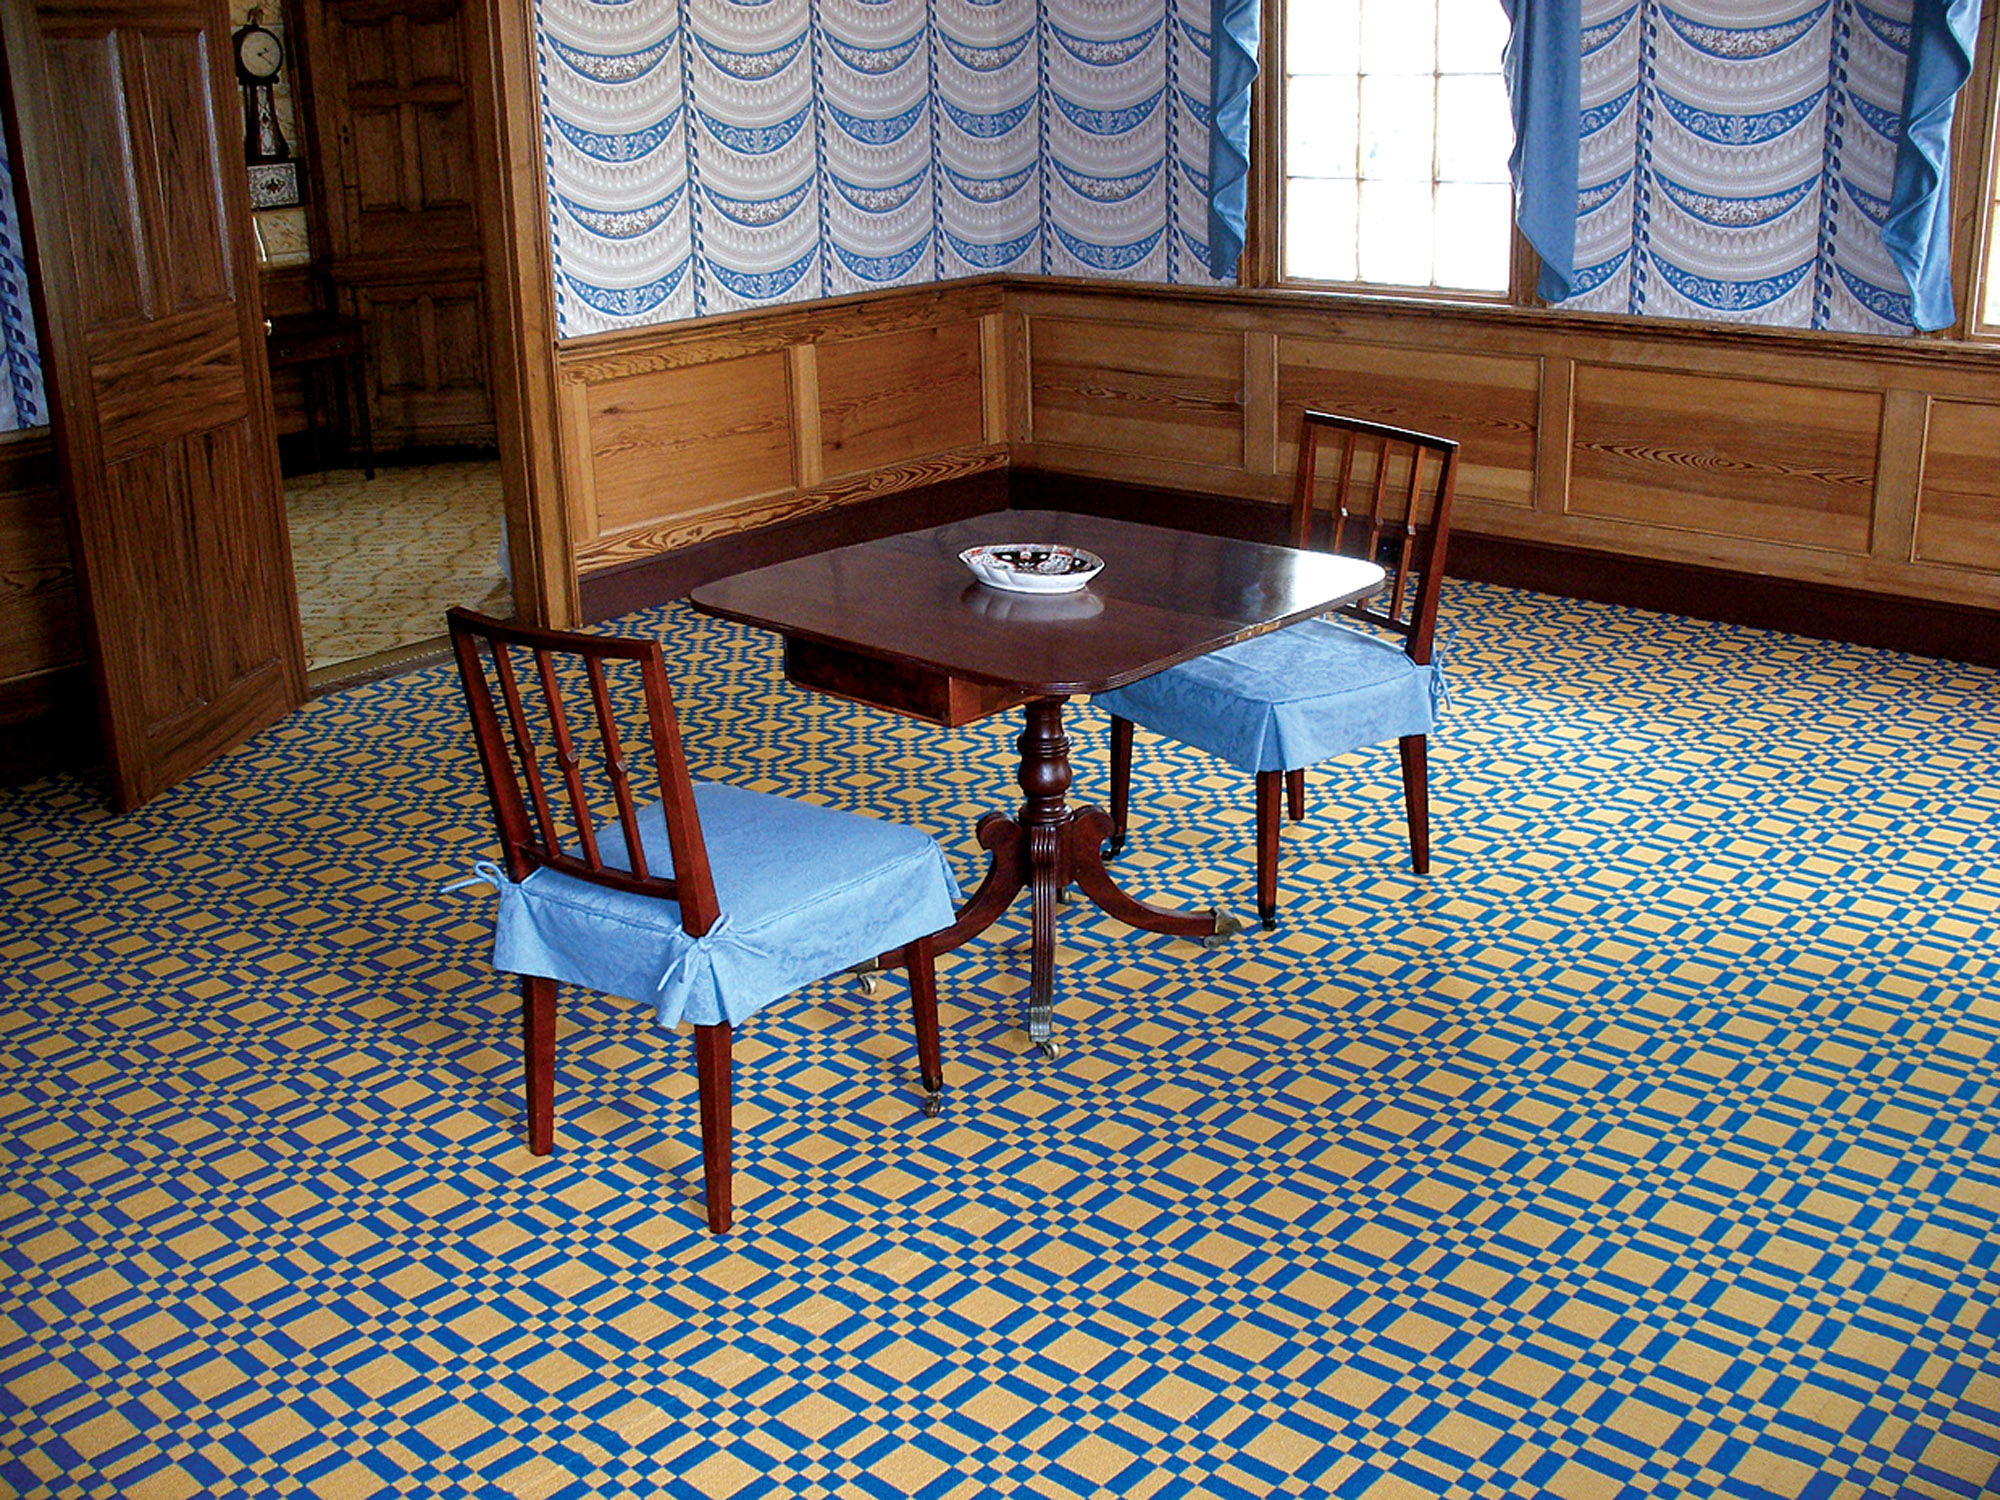 Simple blue seat covers, Georgia house museum